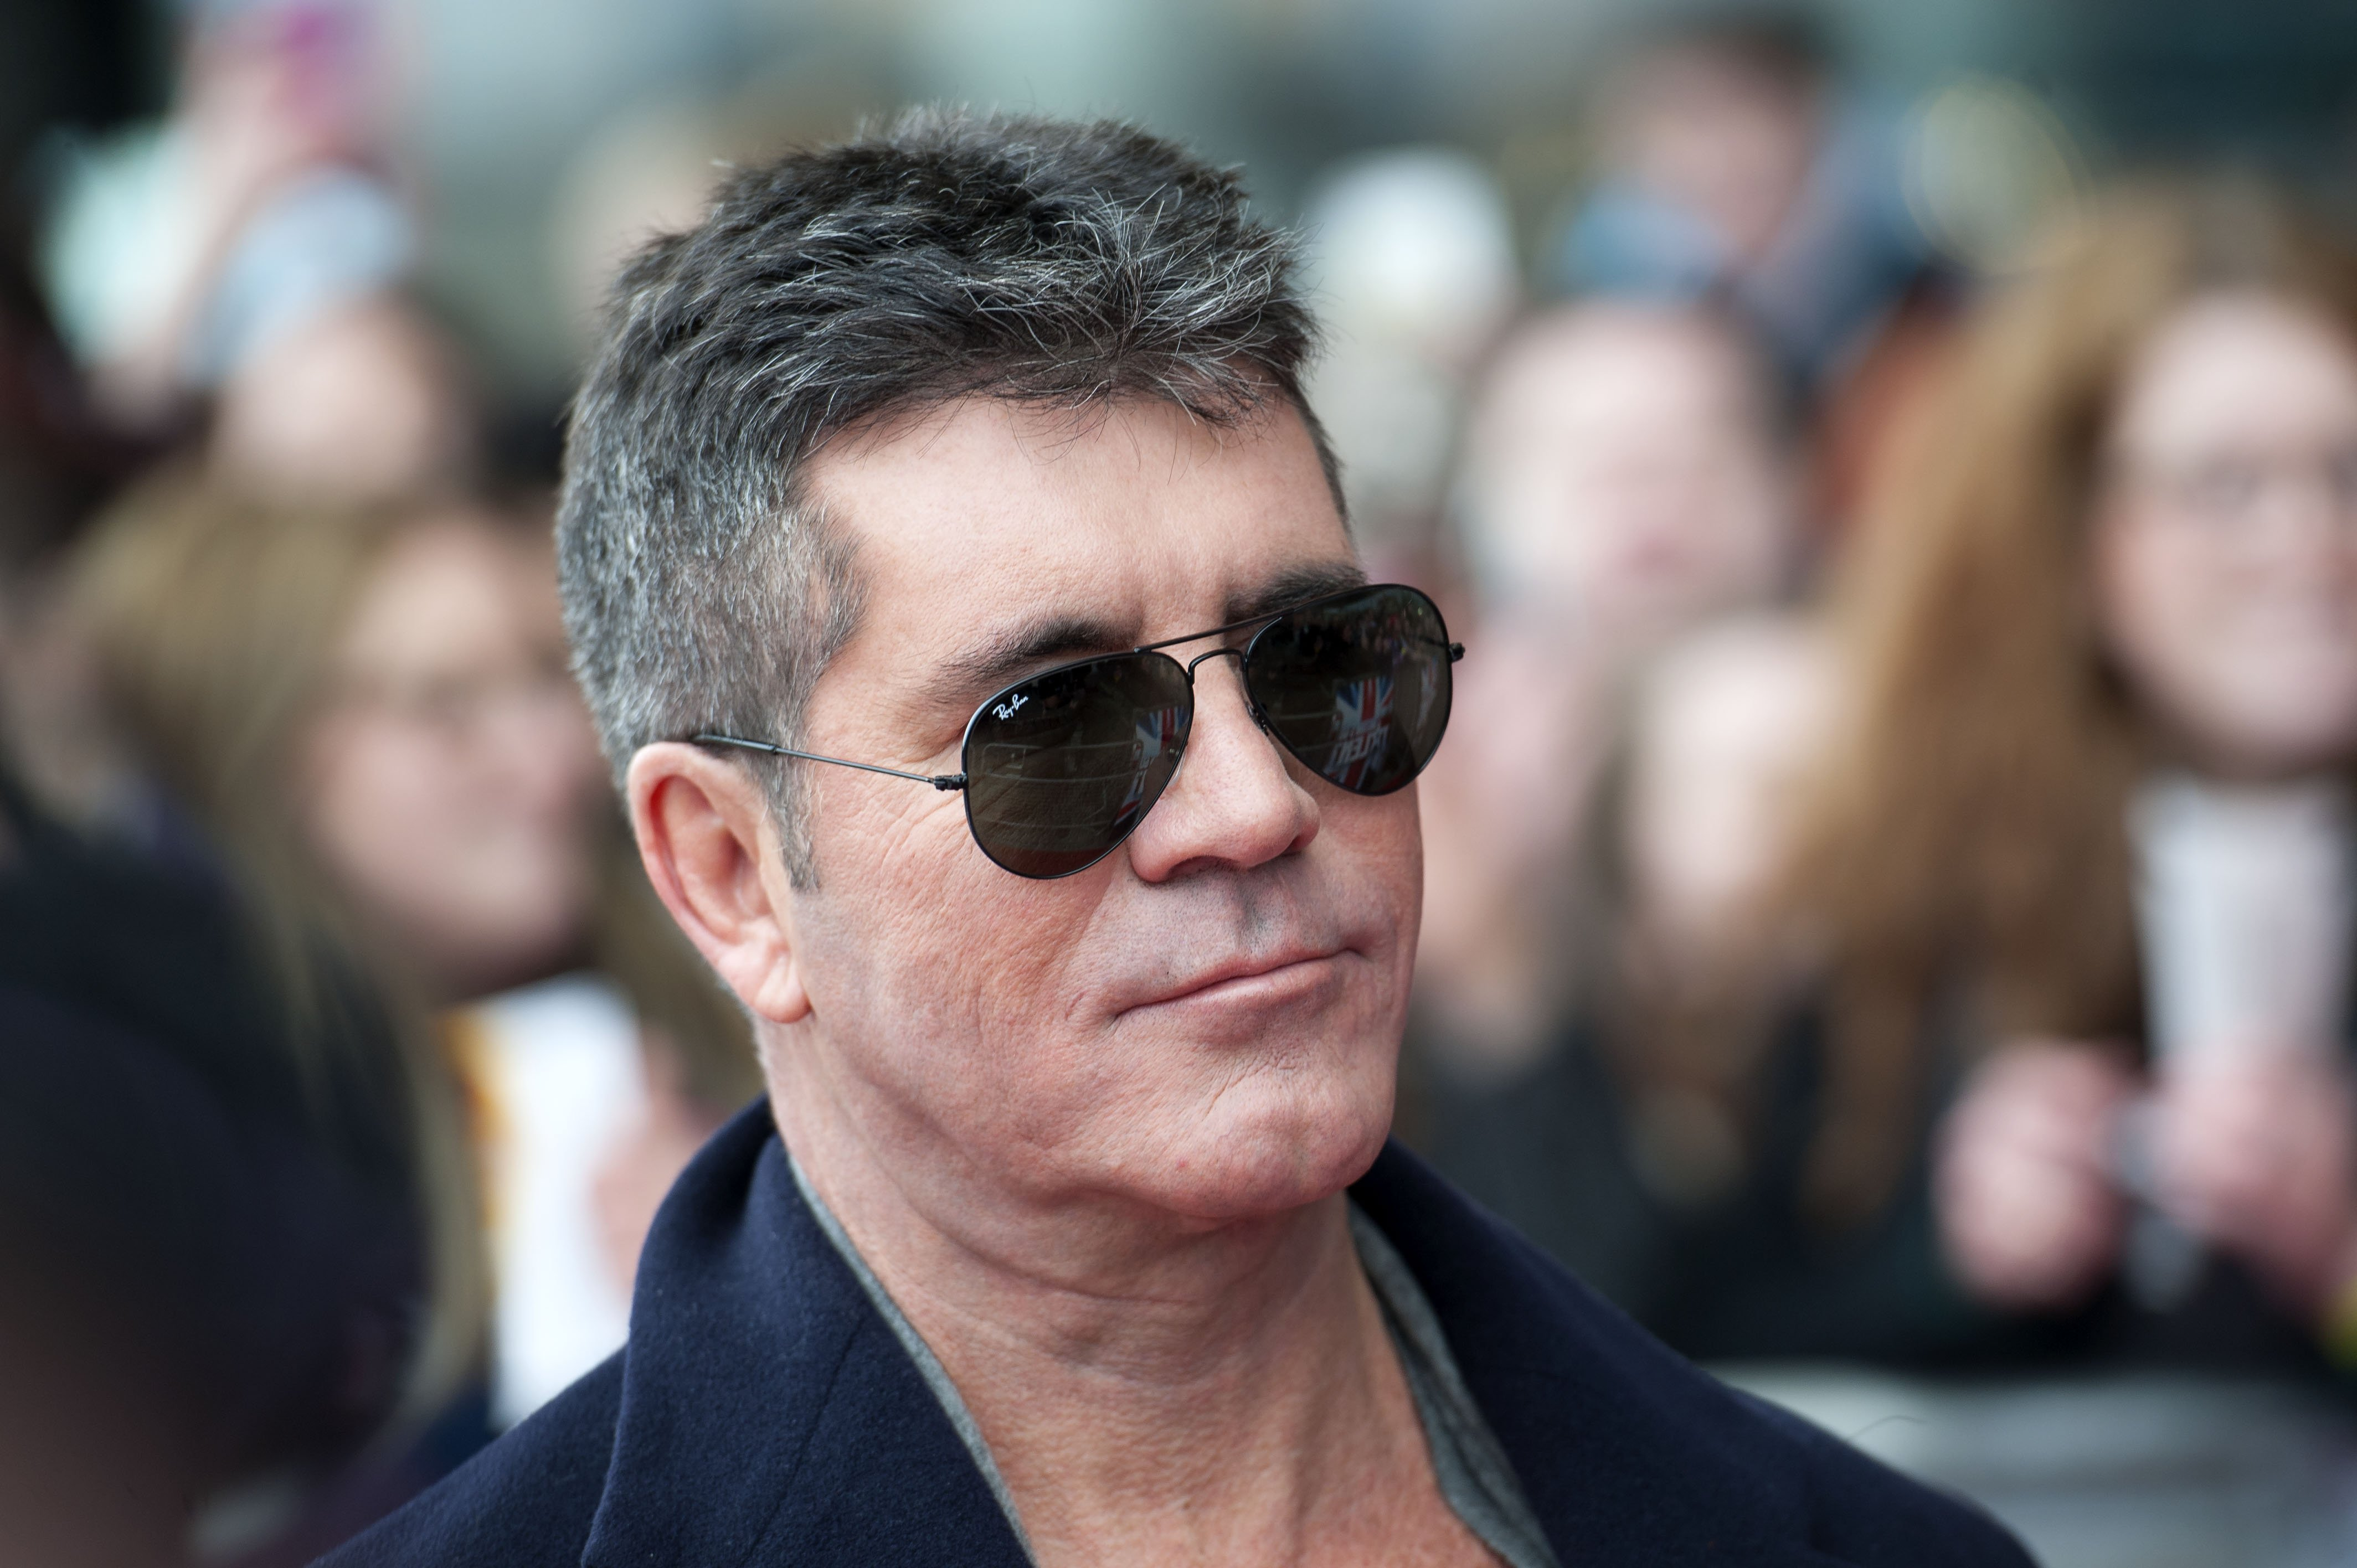 Simon Cowell arrives at the Britain's Got Talent Cardiff auditions at the Wales Millenium Centre on January 23, 2014 | Photo: GettyImages